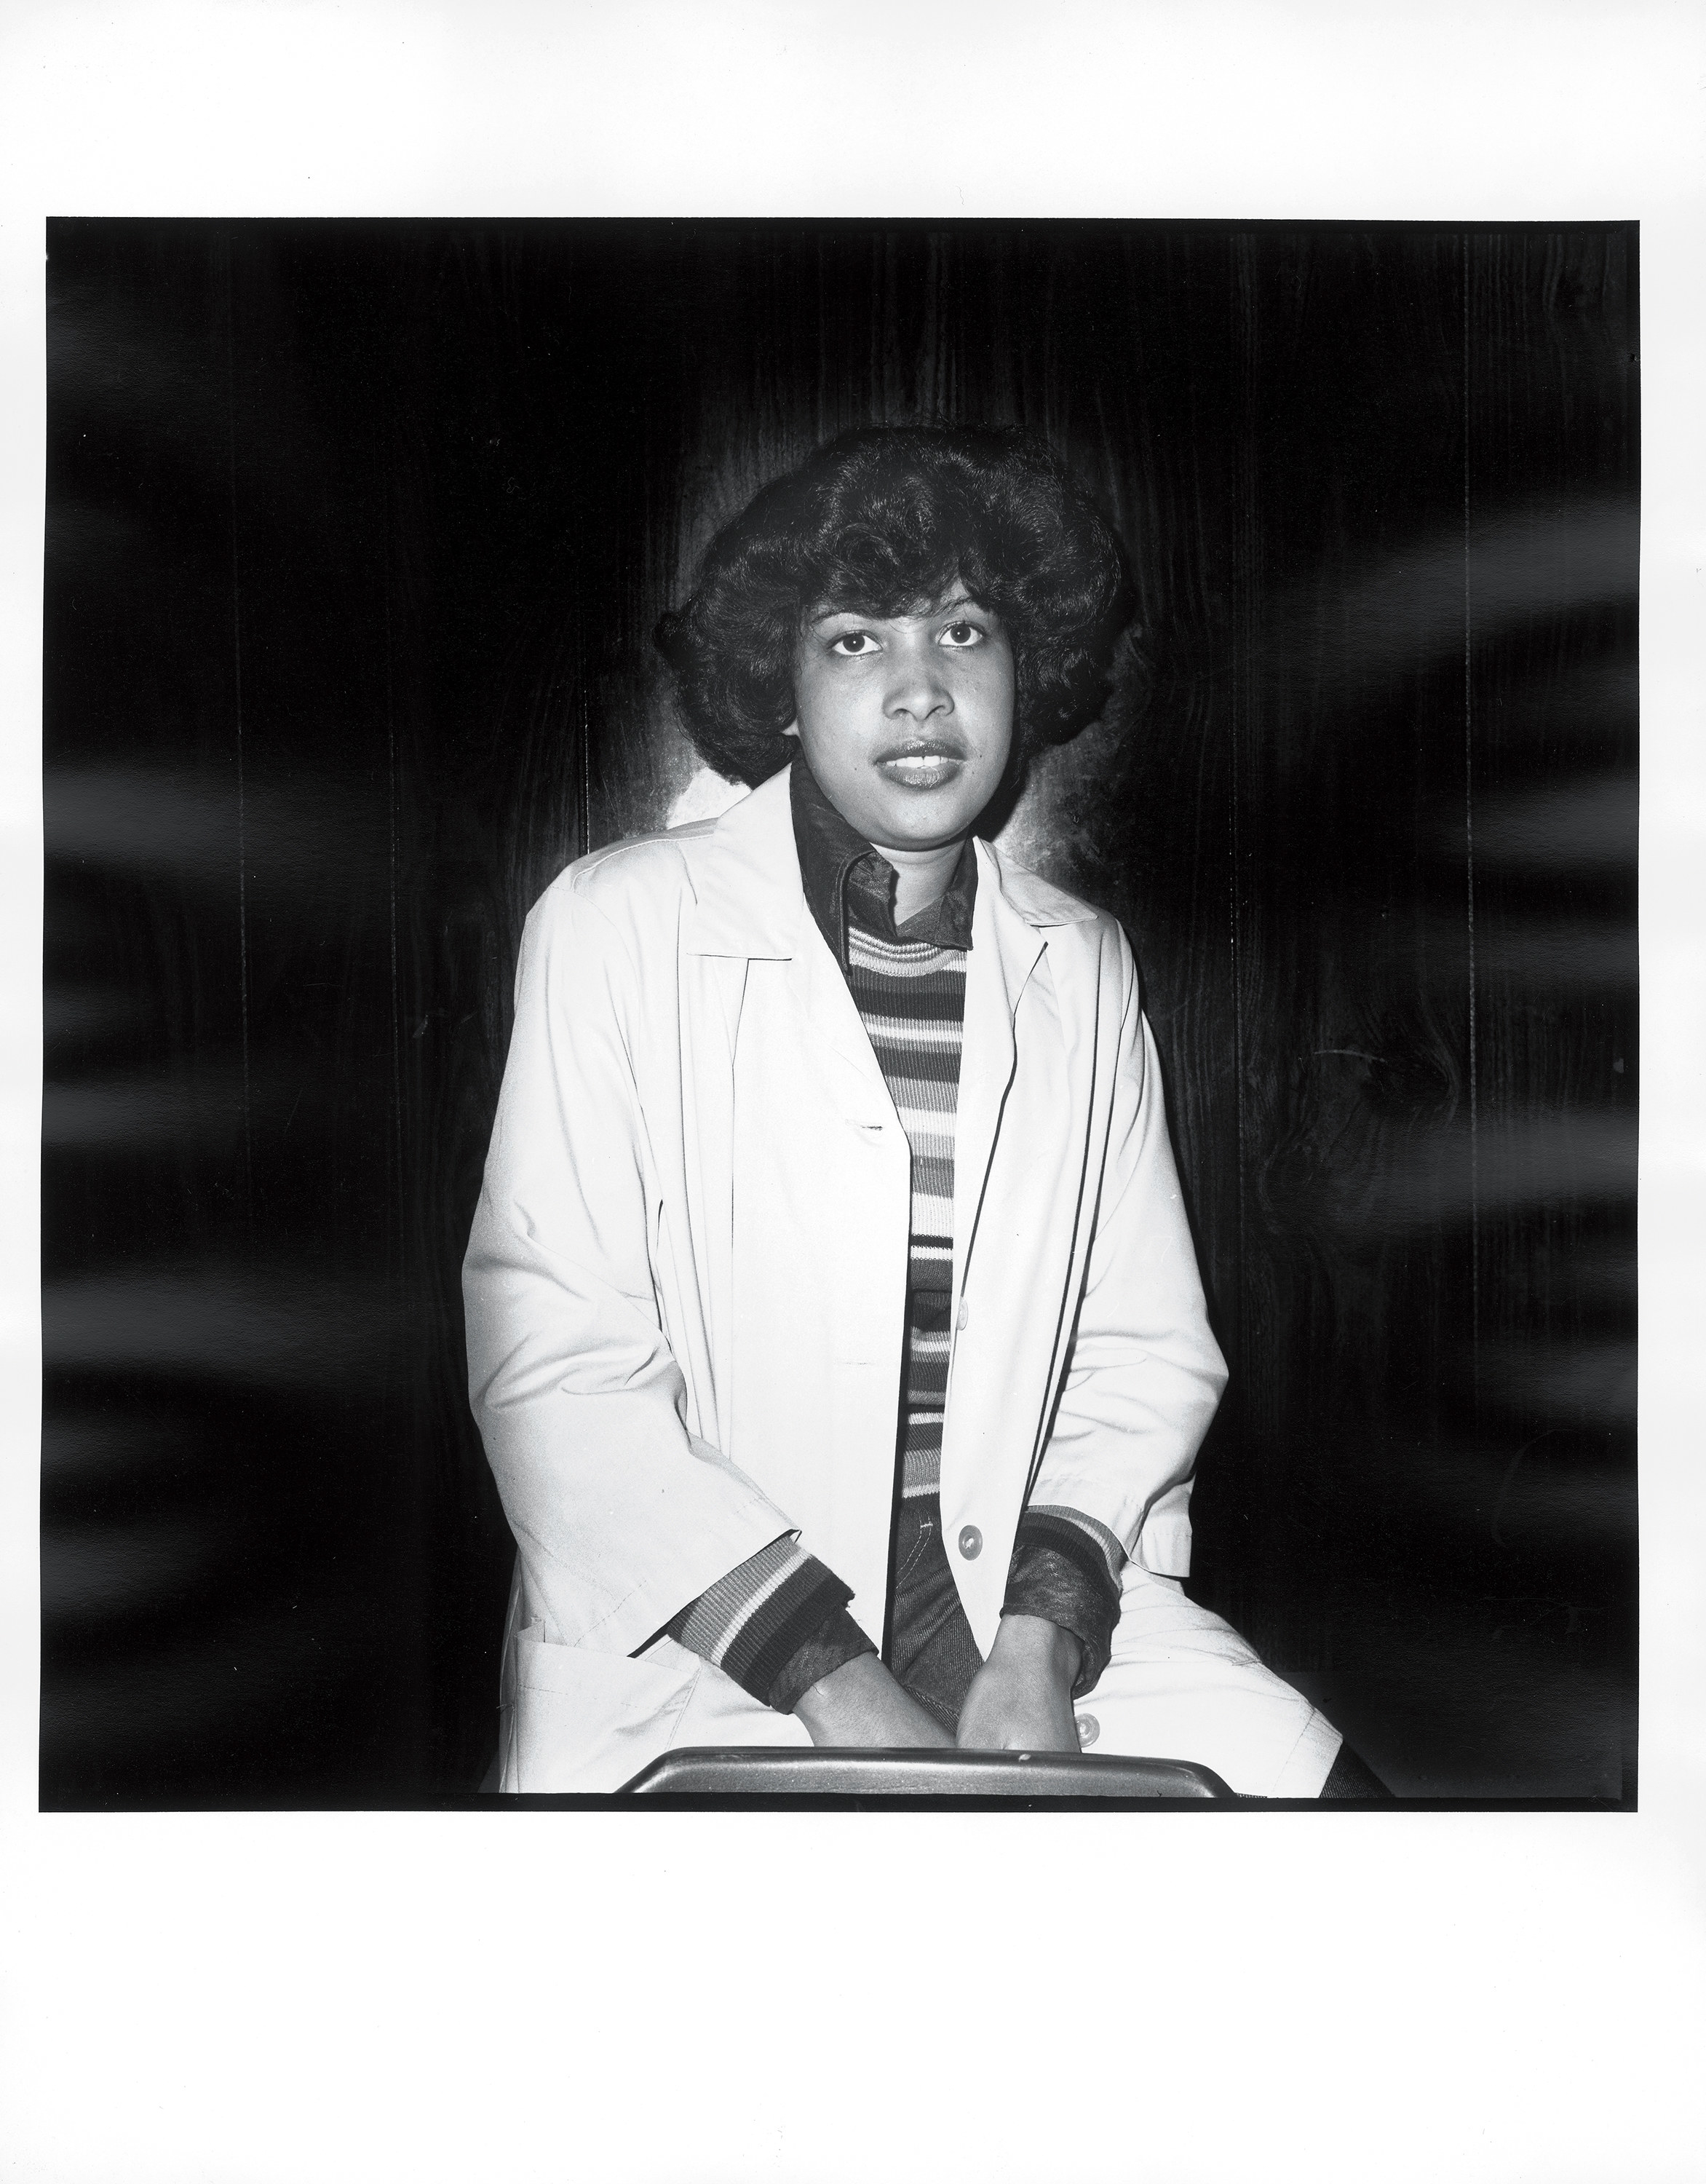 A young woman in a white coat looking directly into the camera